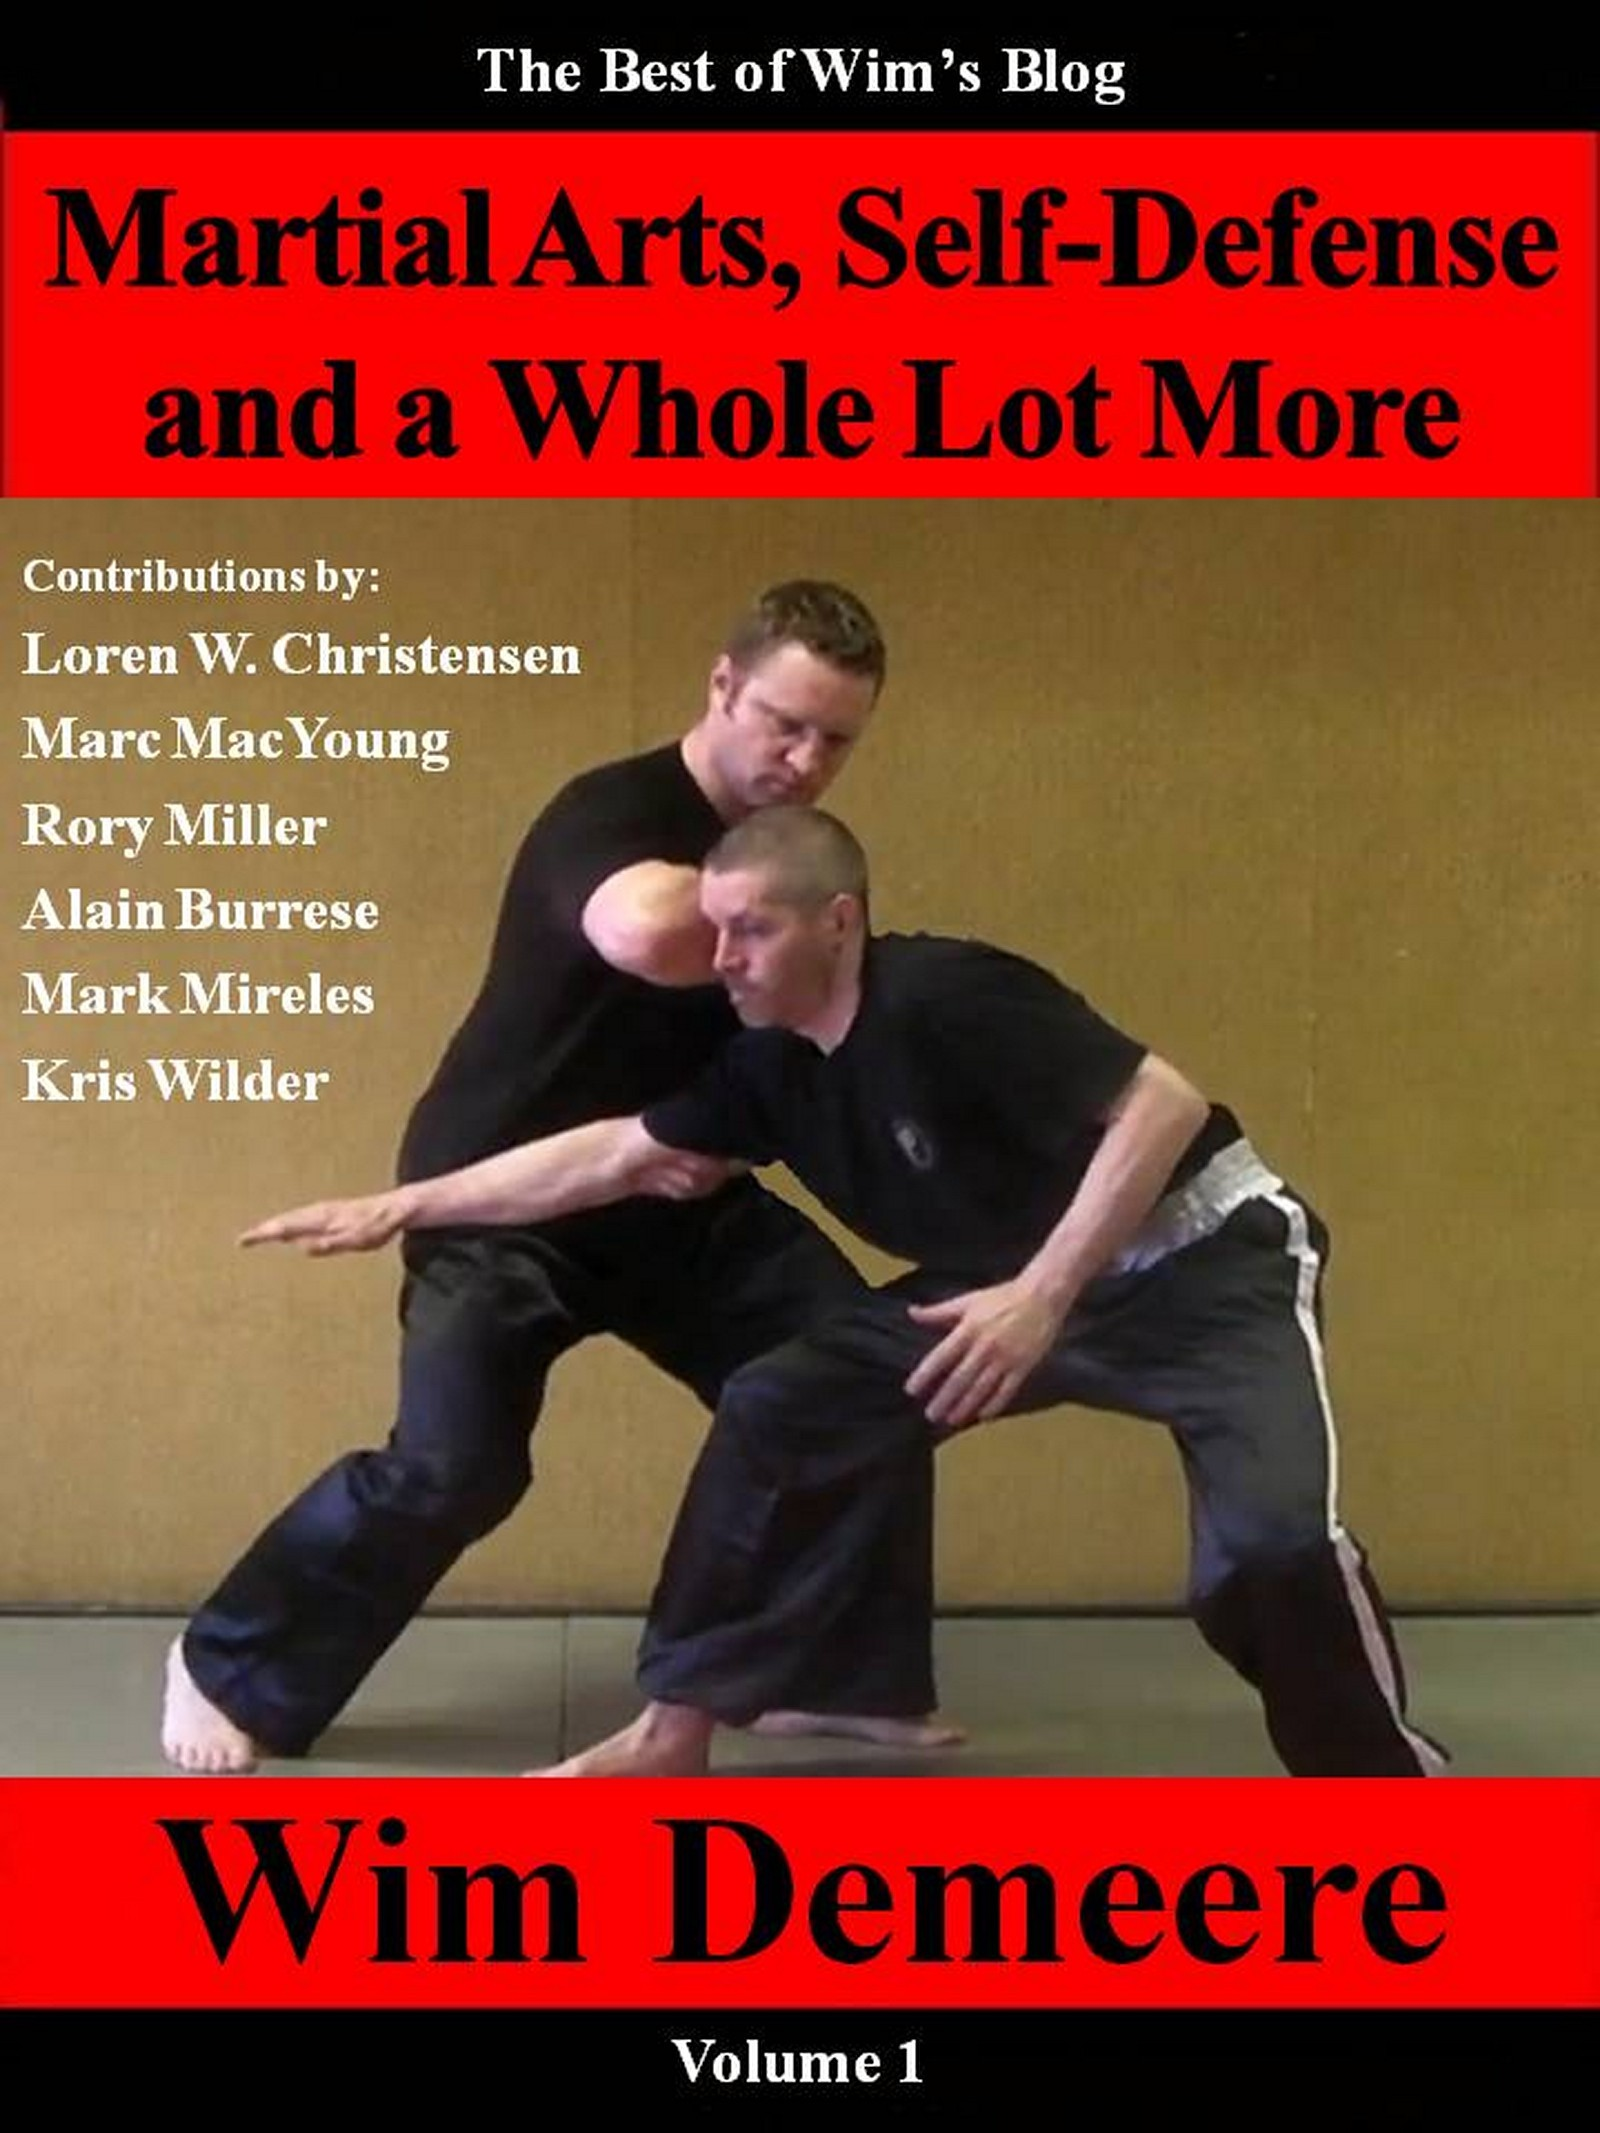 Martial Arts, Self-Defense and a Whole Lot More, Volume 1 (The Best of Wim's Blog)